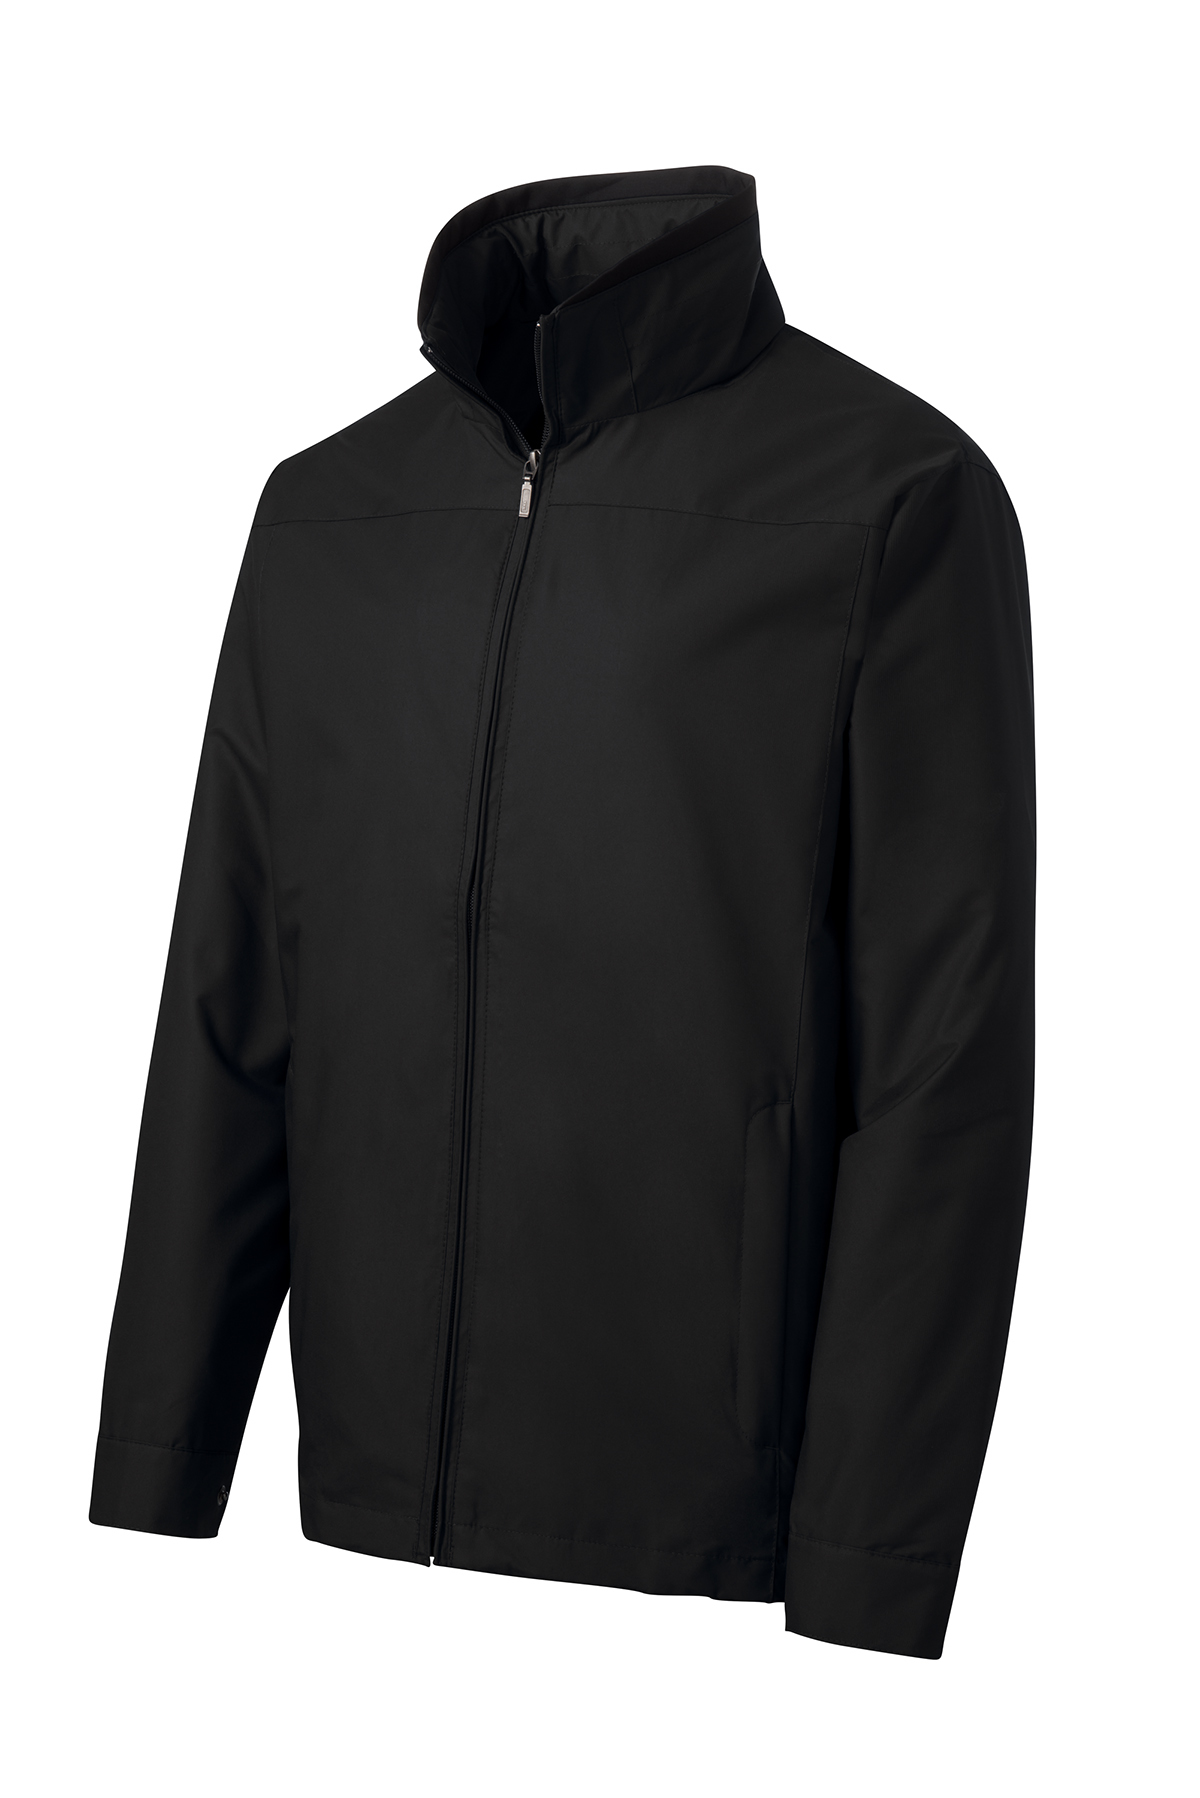 Port Authority Womens Successor Jacket